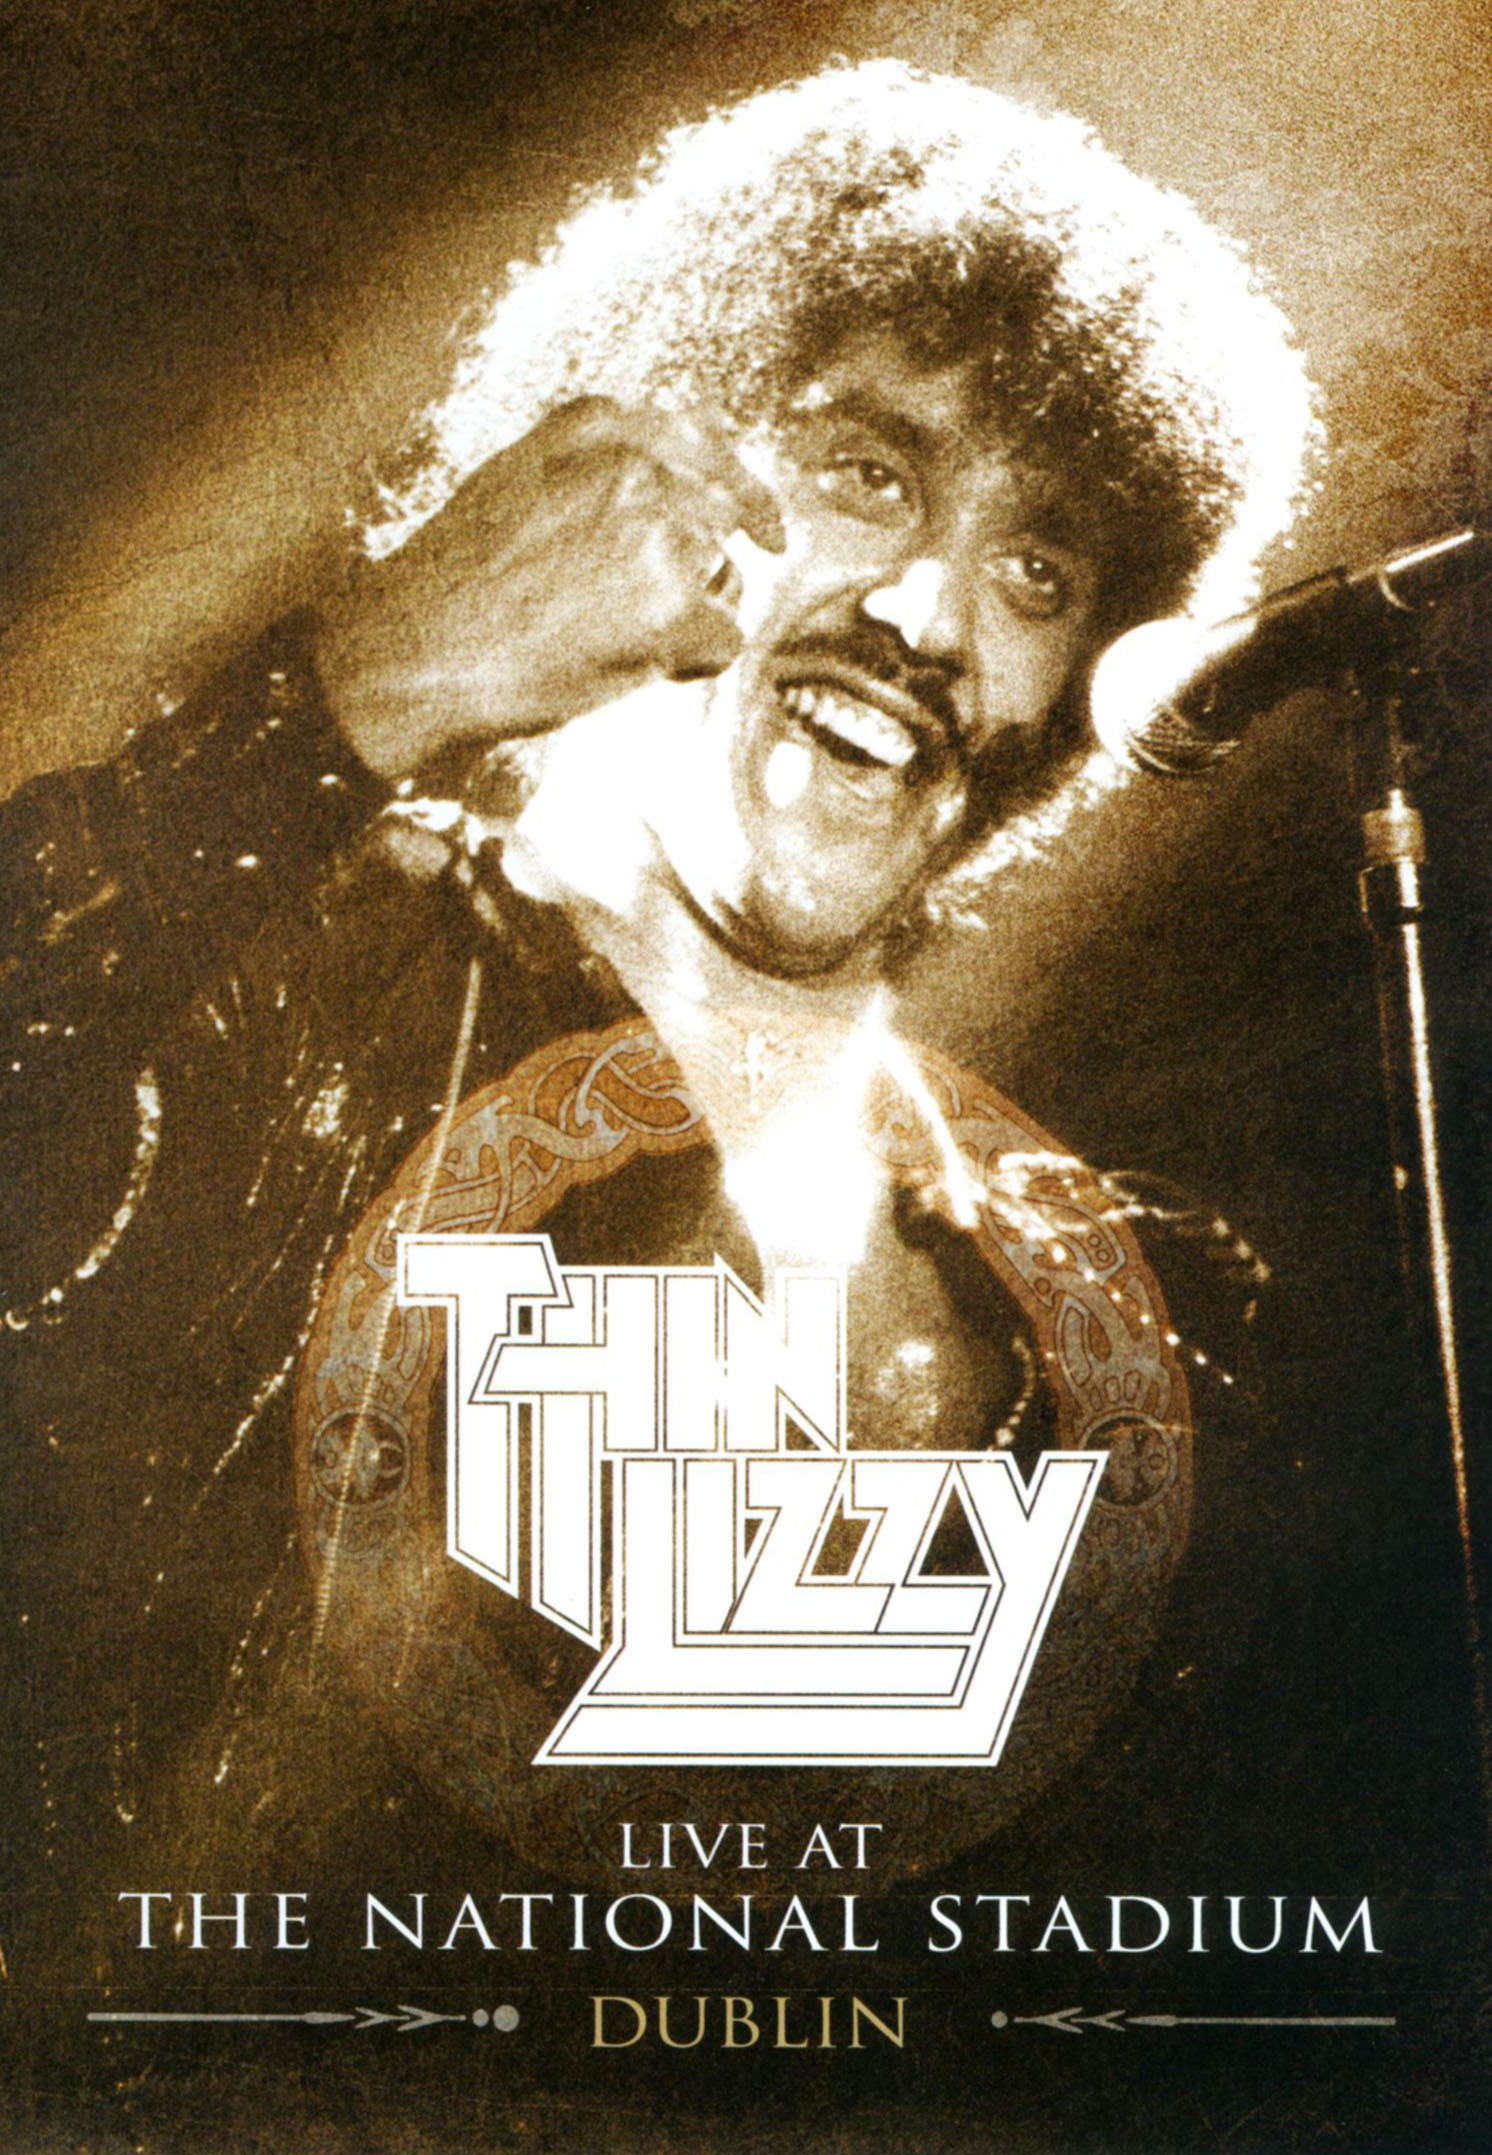 Thin Lizzy: Live at the National Stadium, Dublin